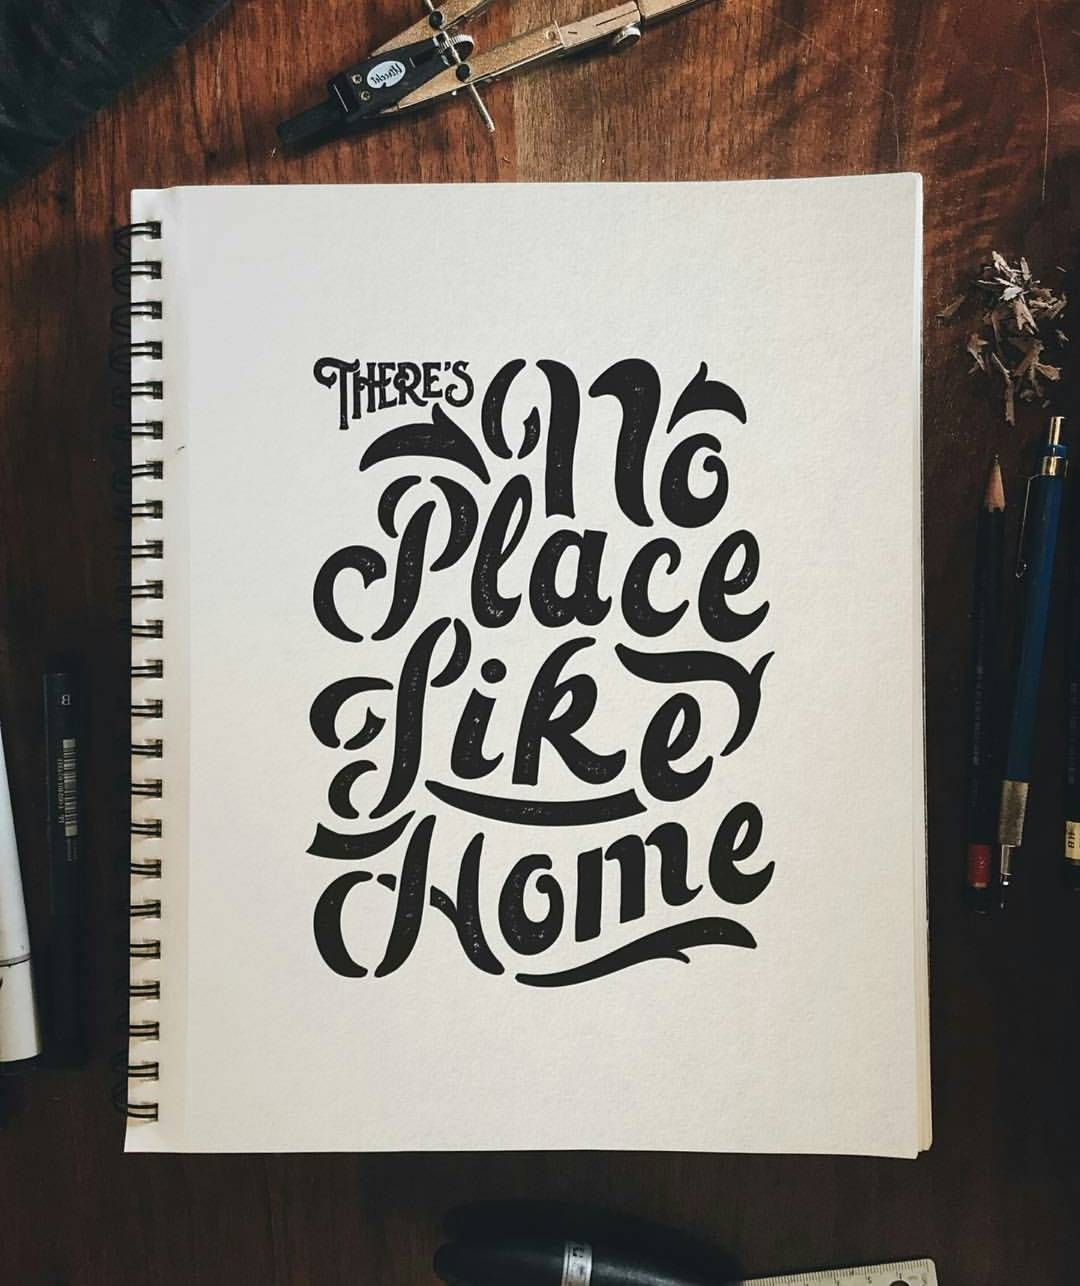 Theres No Place Like Home -From@wetherbeecreativeco . . #pixelsurplus #typography #type #dailytype #thedailytype #typelove #typedesign #graphicdesigns #graphicdesigners #typeeverything #inspiration #handlettering #handdrawn #designer #design #calligraphy #quote #quotes #quoteoftheday #fb#typespire #typegang #goodtype #illustration #handlettered #designers #lettering